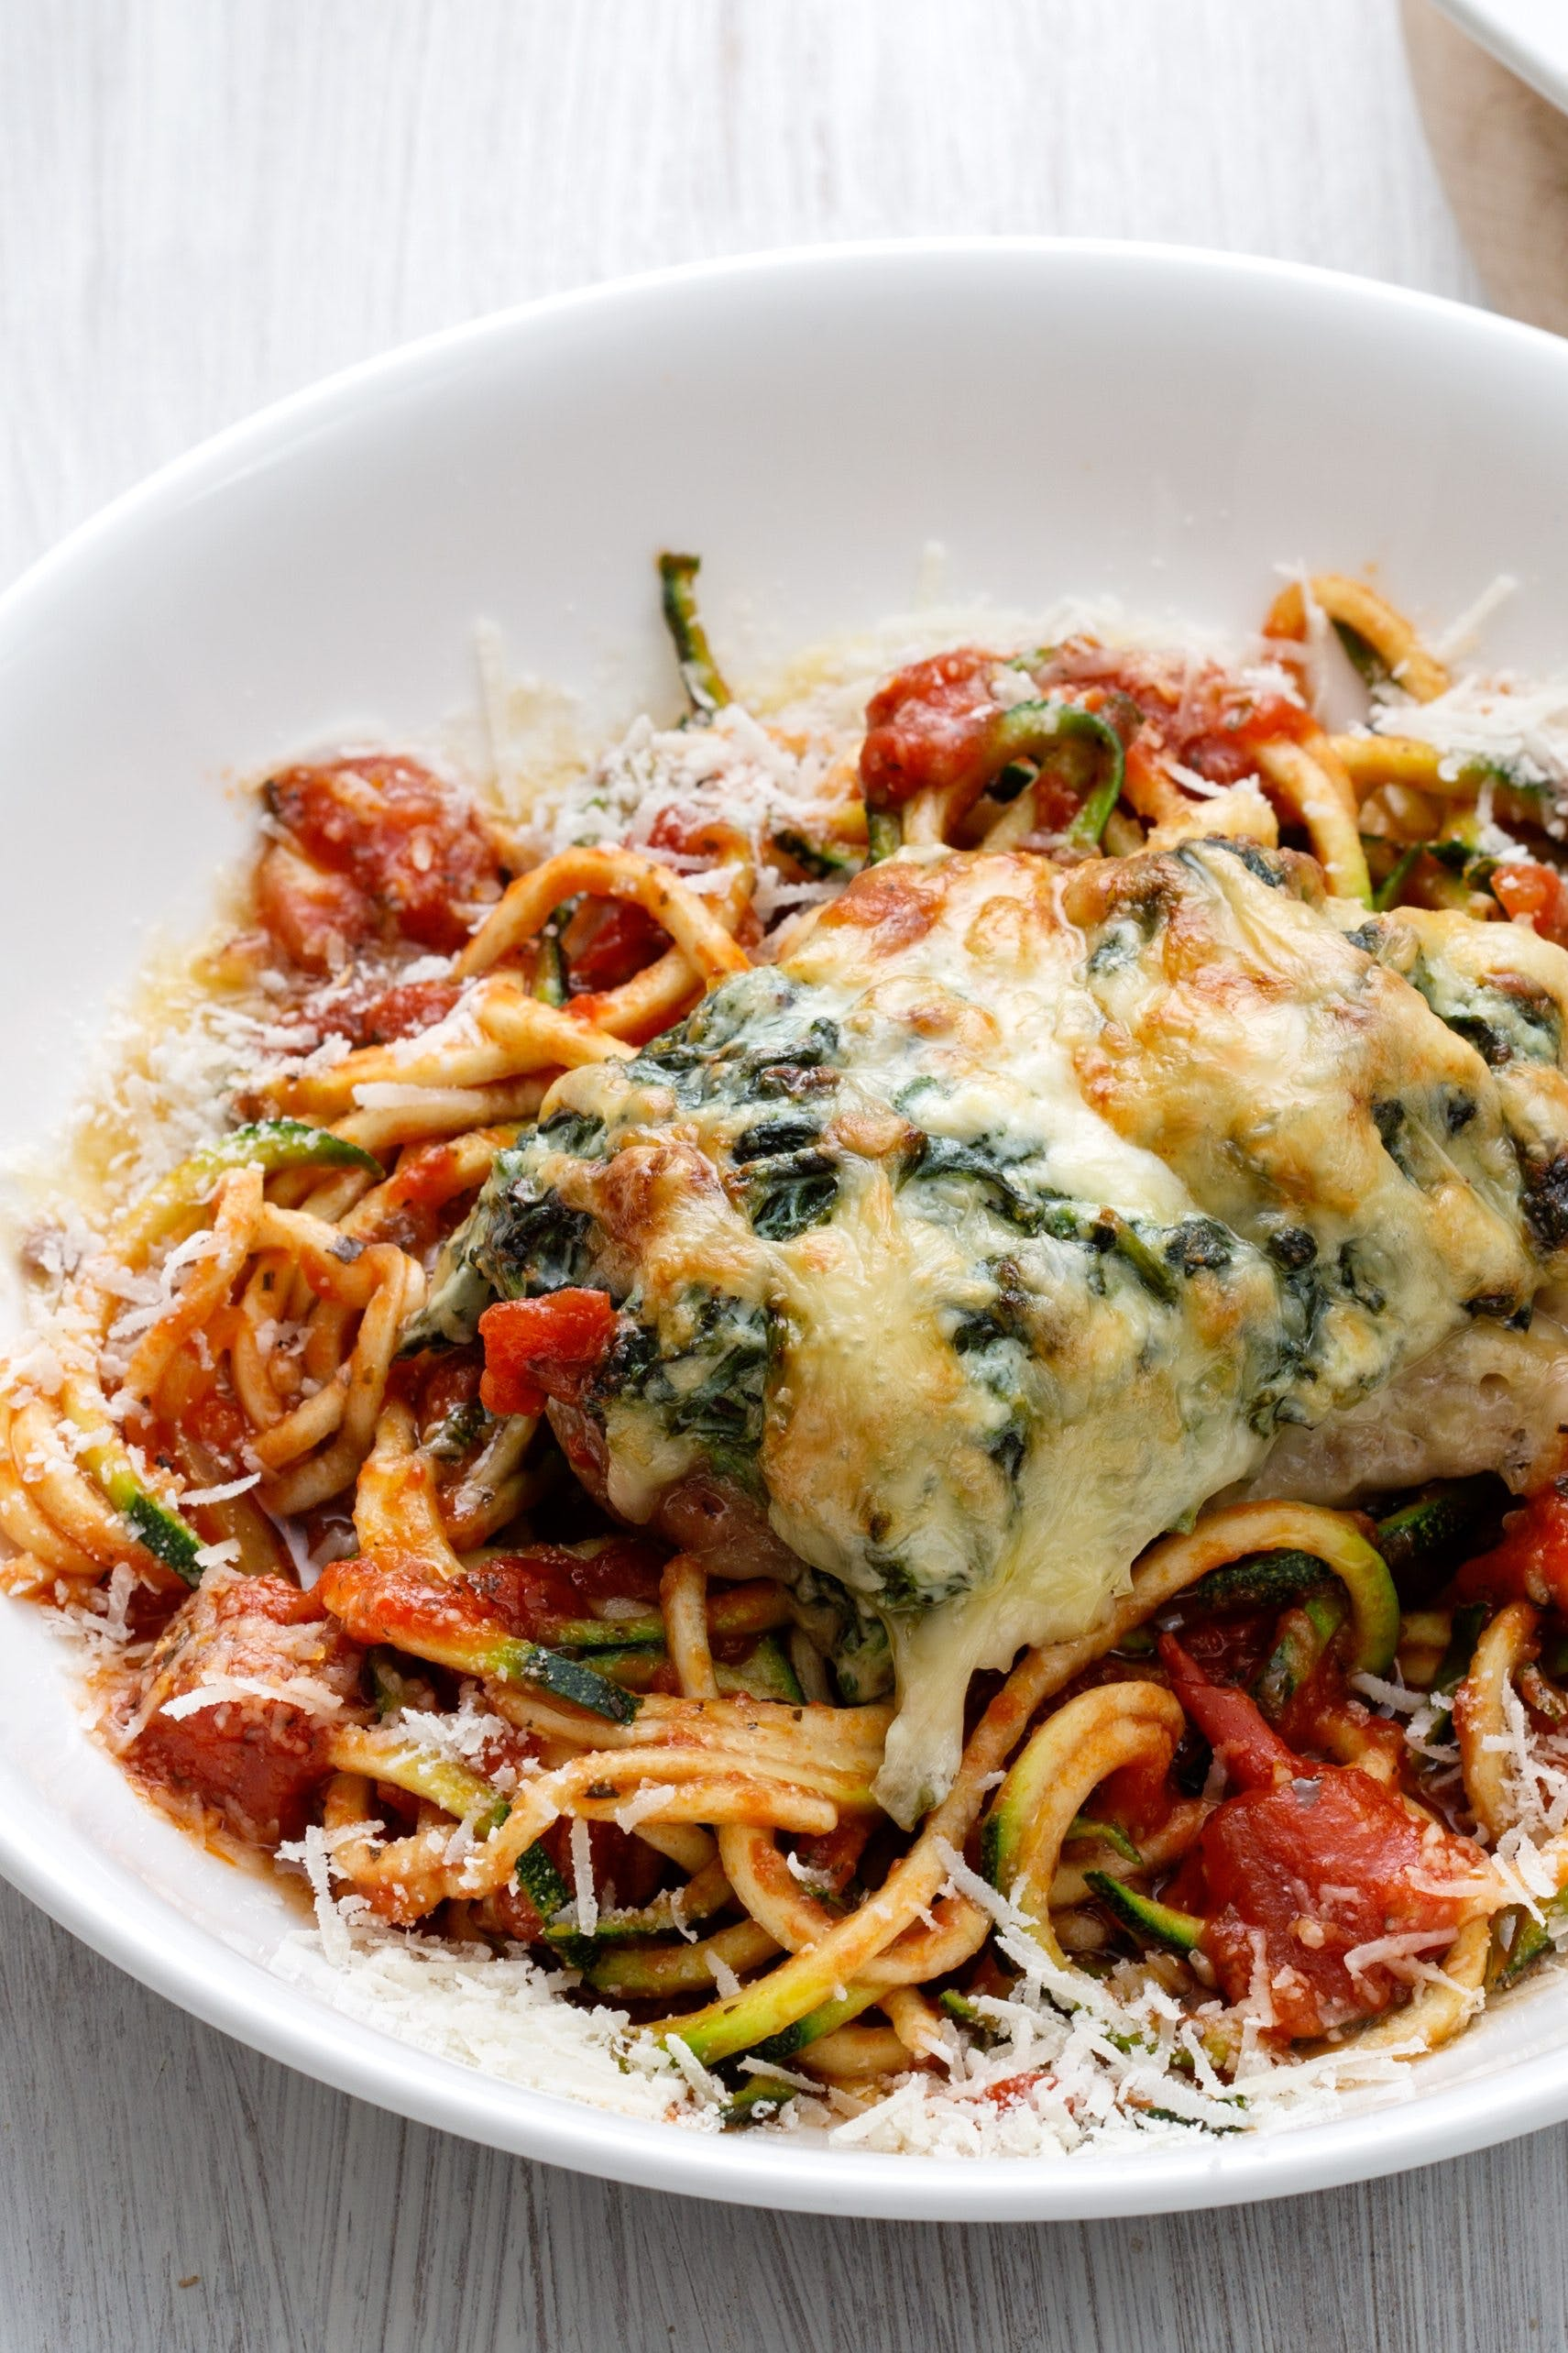 Stuffed chicken breast with zoodles and tomato sauce